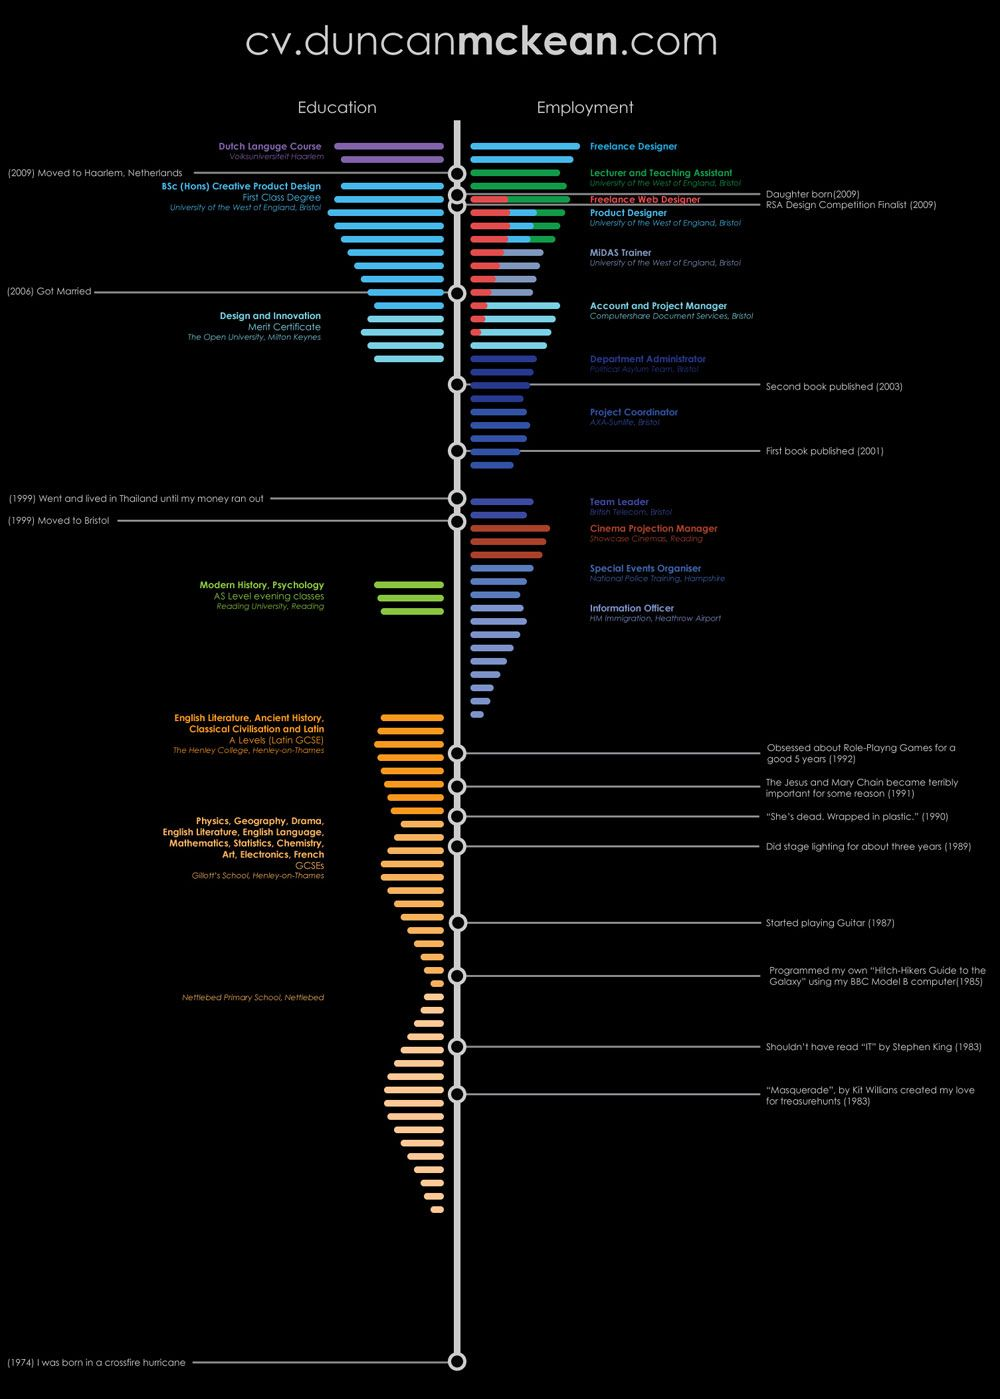 a visceral and engaging infographic resume visualization that uses timeline to index employment